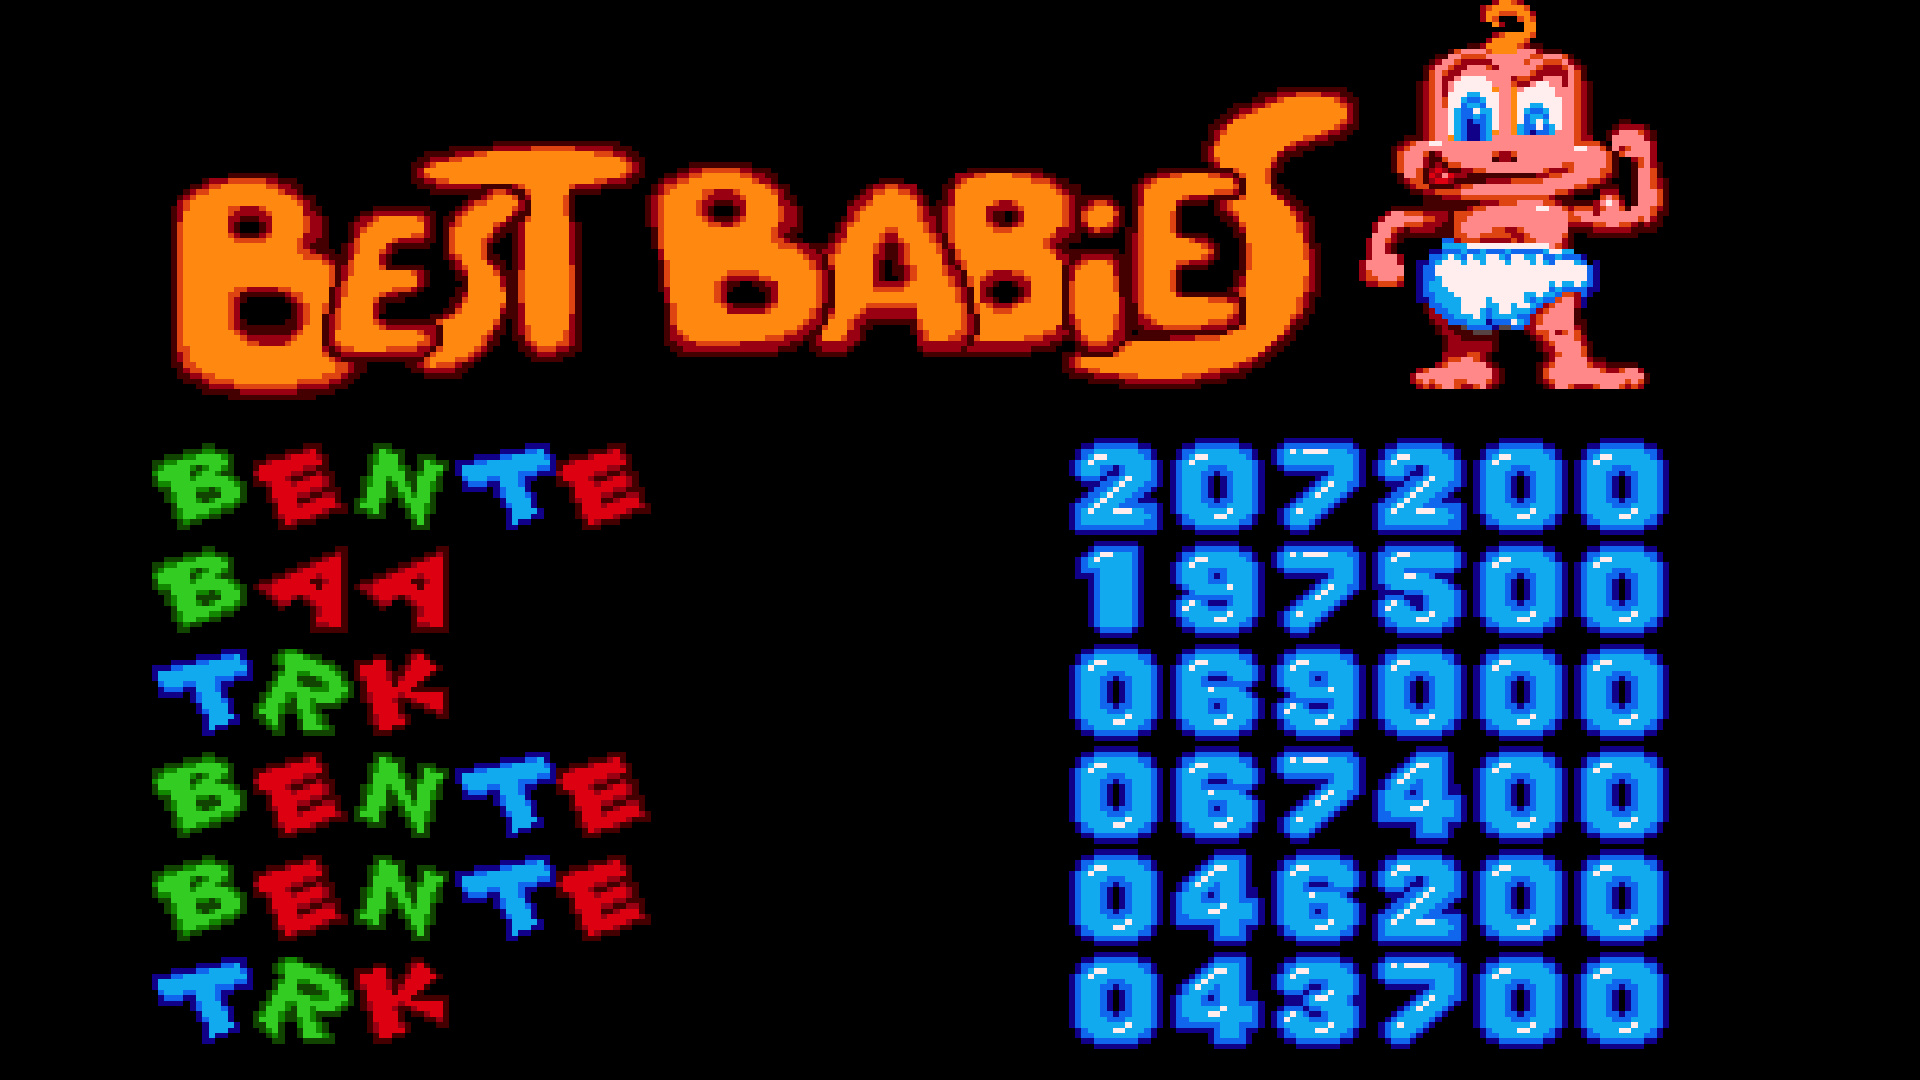 TheTrickster: Baby Jo in Going Home (Amiga Emulated) 69,000 points on 2015-10-20 07:43:43